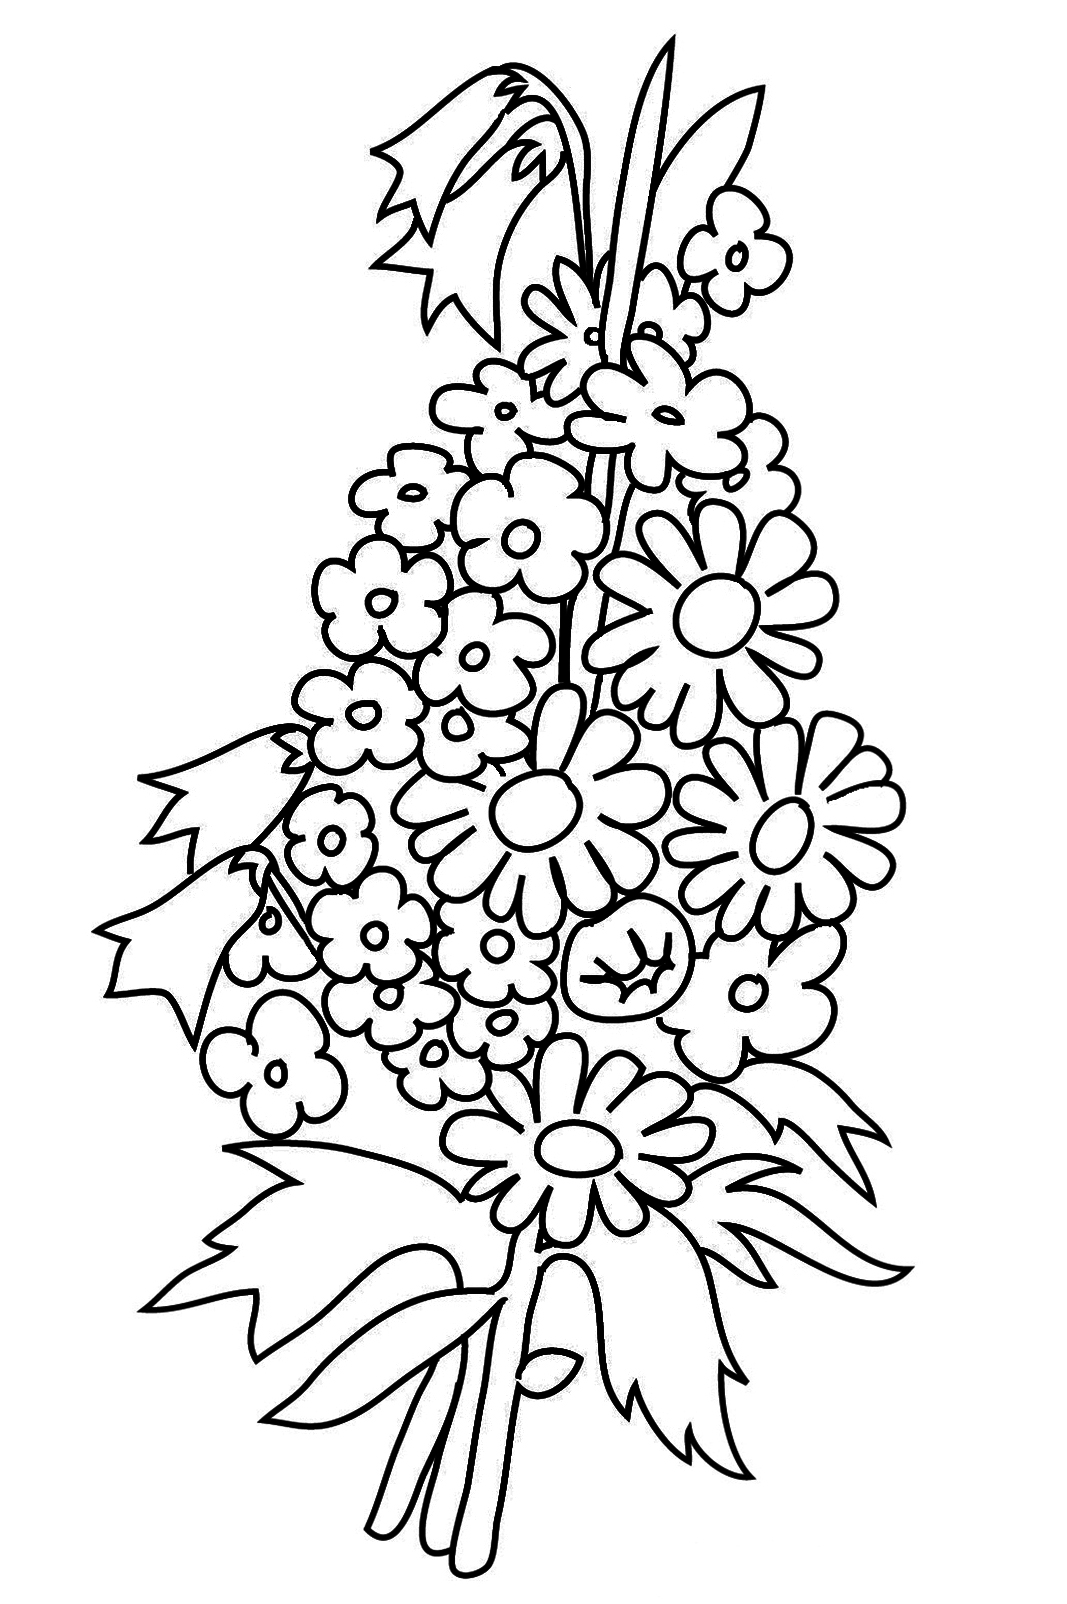 coloring sheets of flowers free easy to print flower coloring pages tulamama sheets of flowers coloring